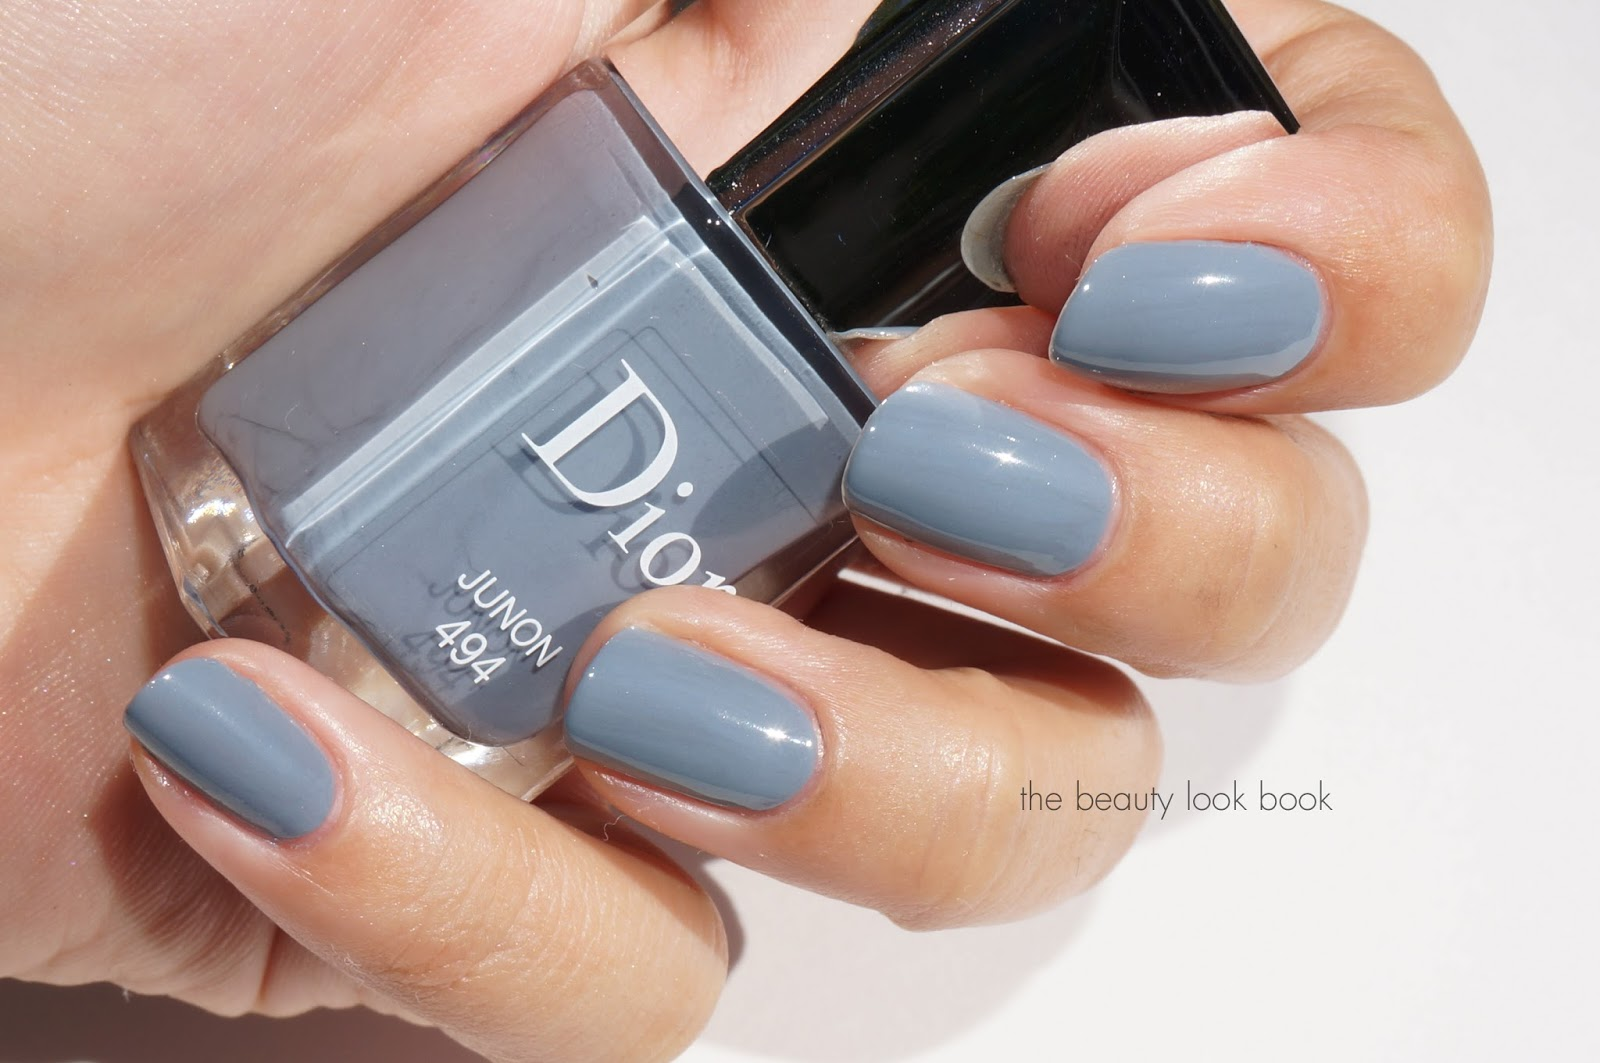 Dior, Incognito,The Beauty Look Book: Beauty Look Book | Favorite ...